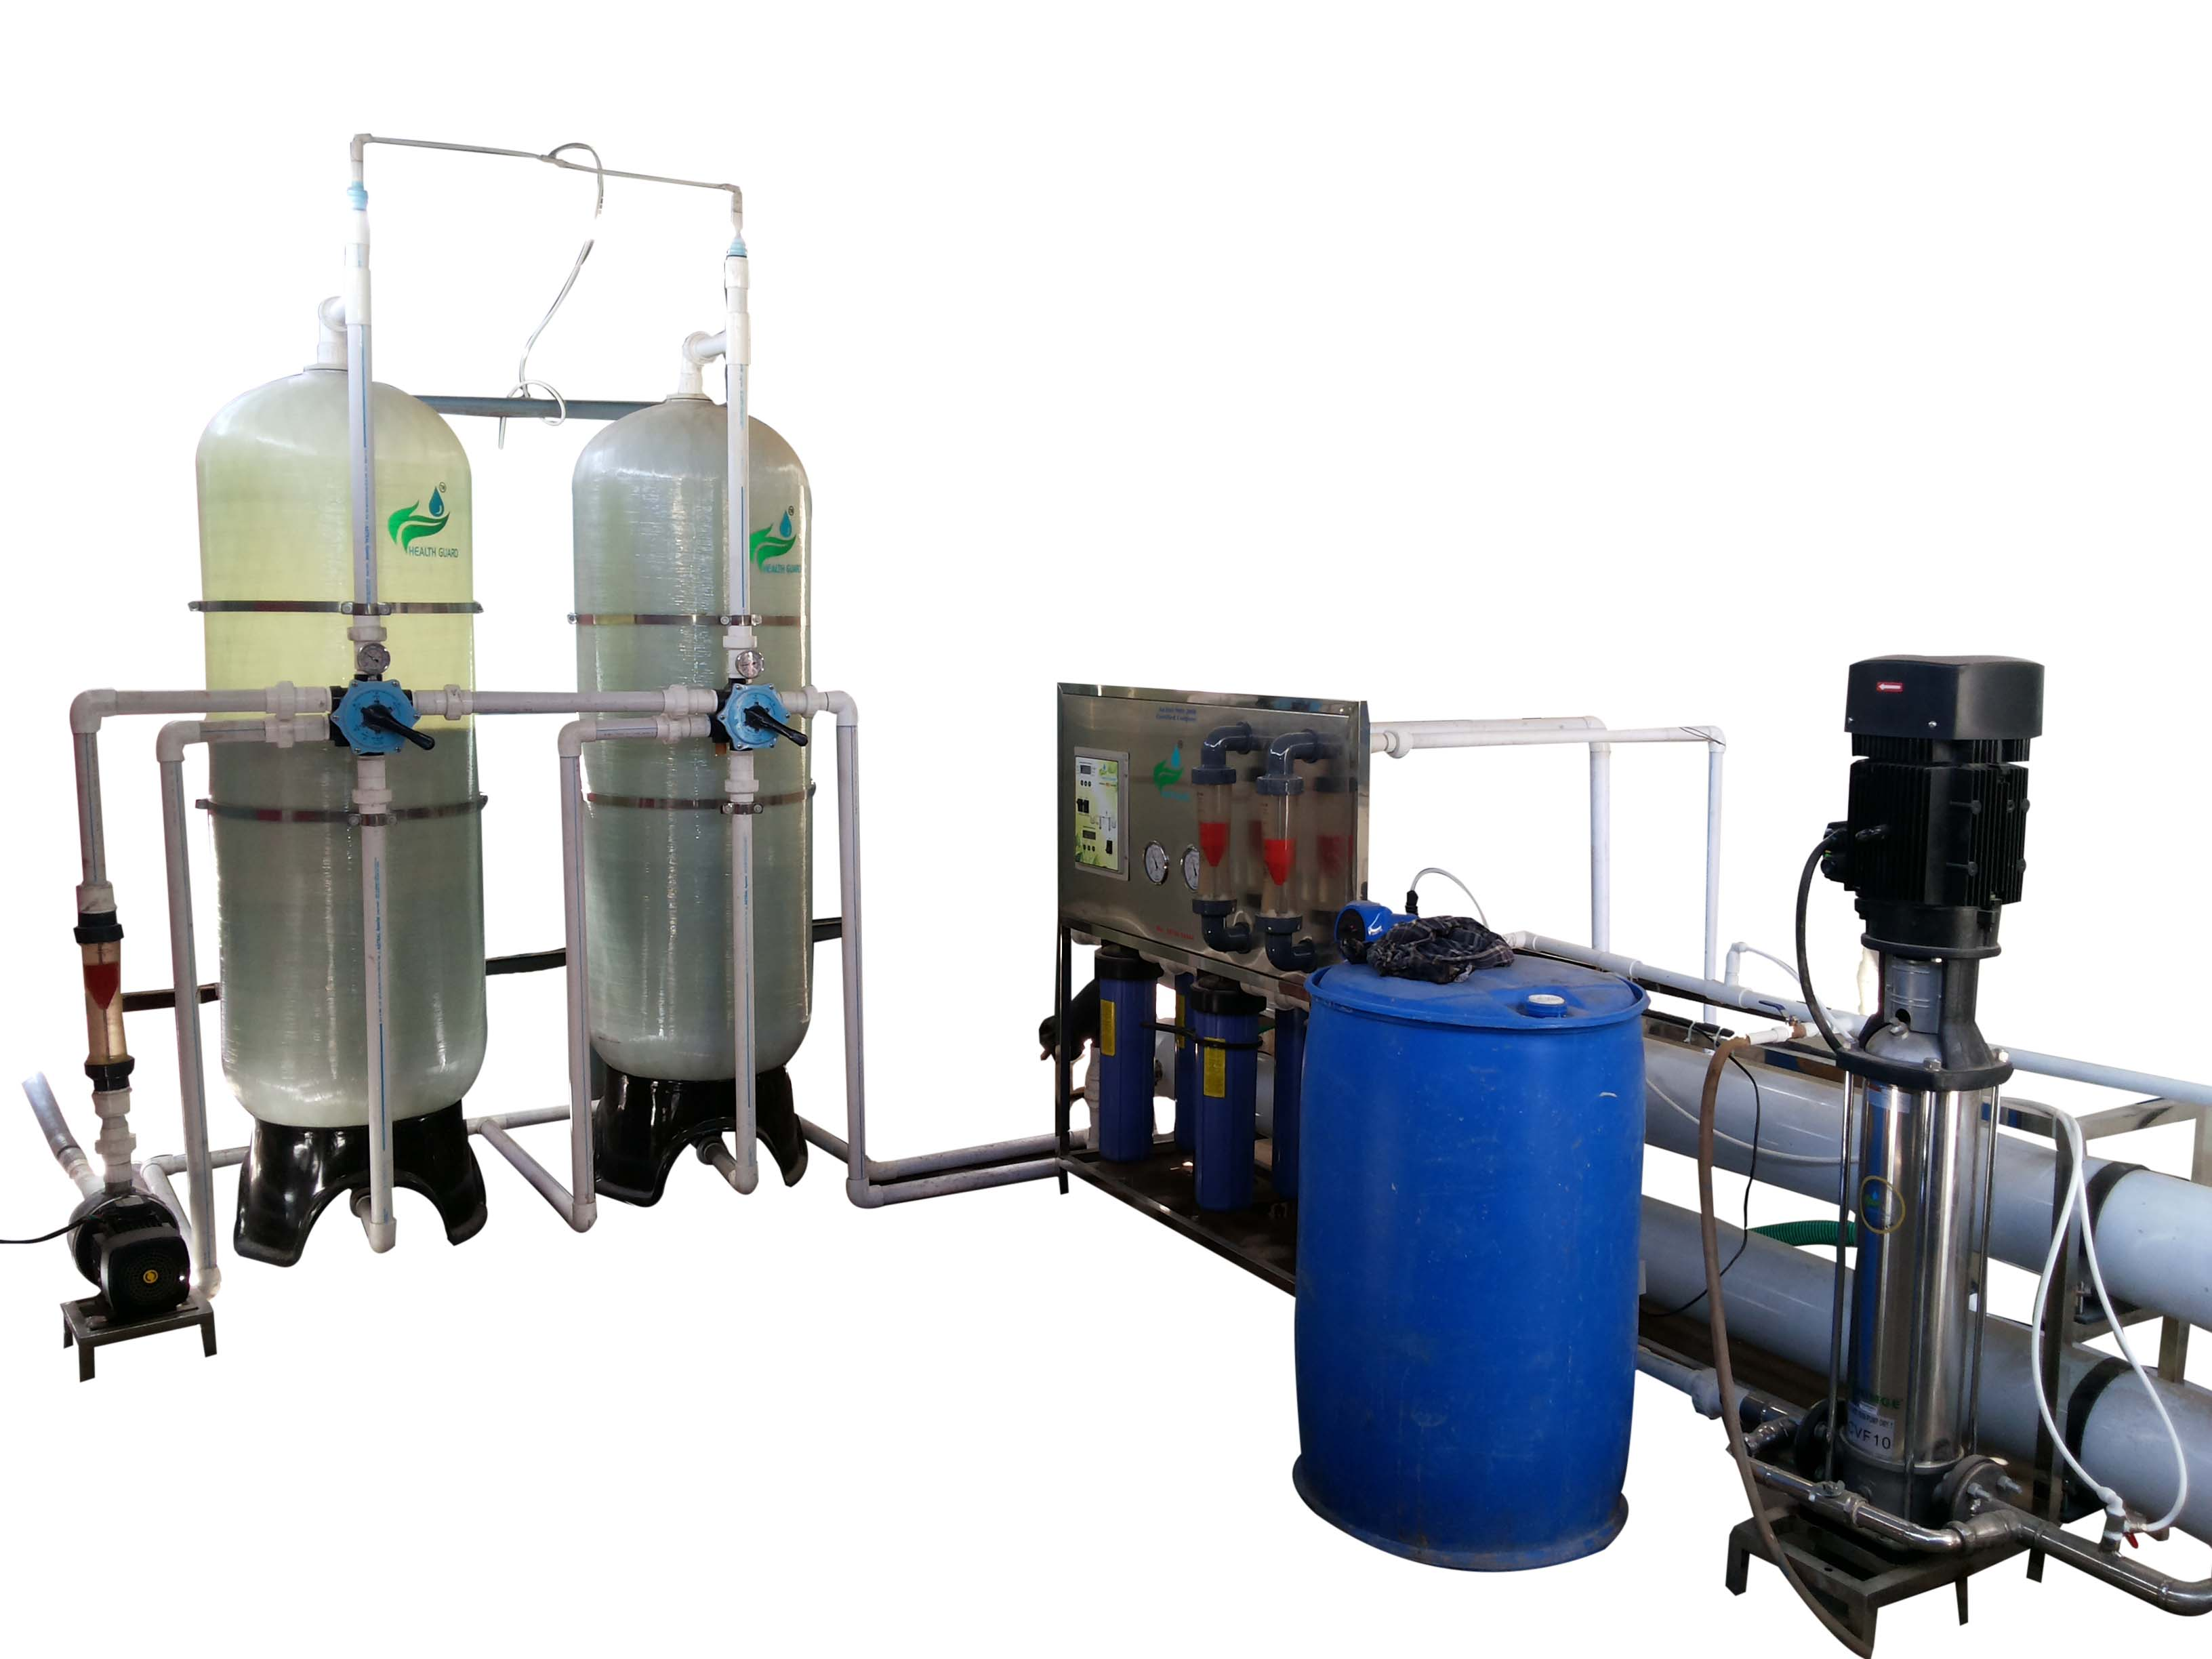 HEALTH GUARD WATER SOLUTION